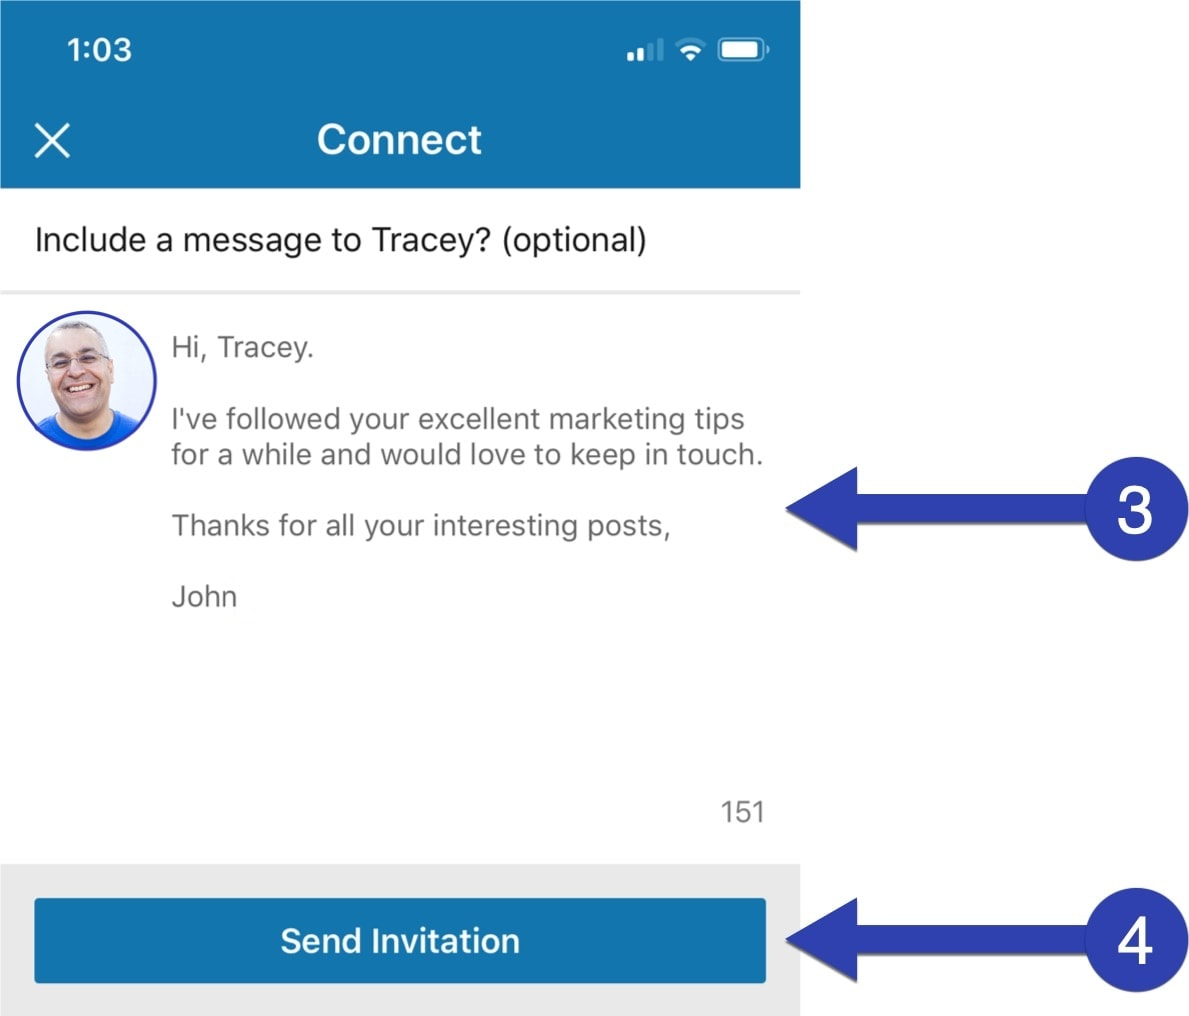 Enter your personalised message, then send the invitation